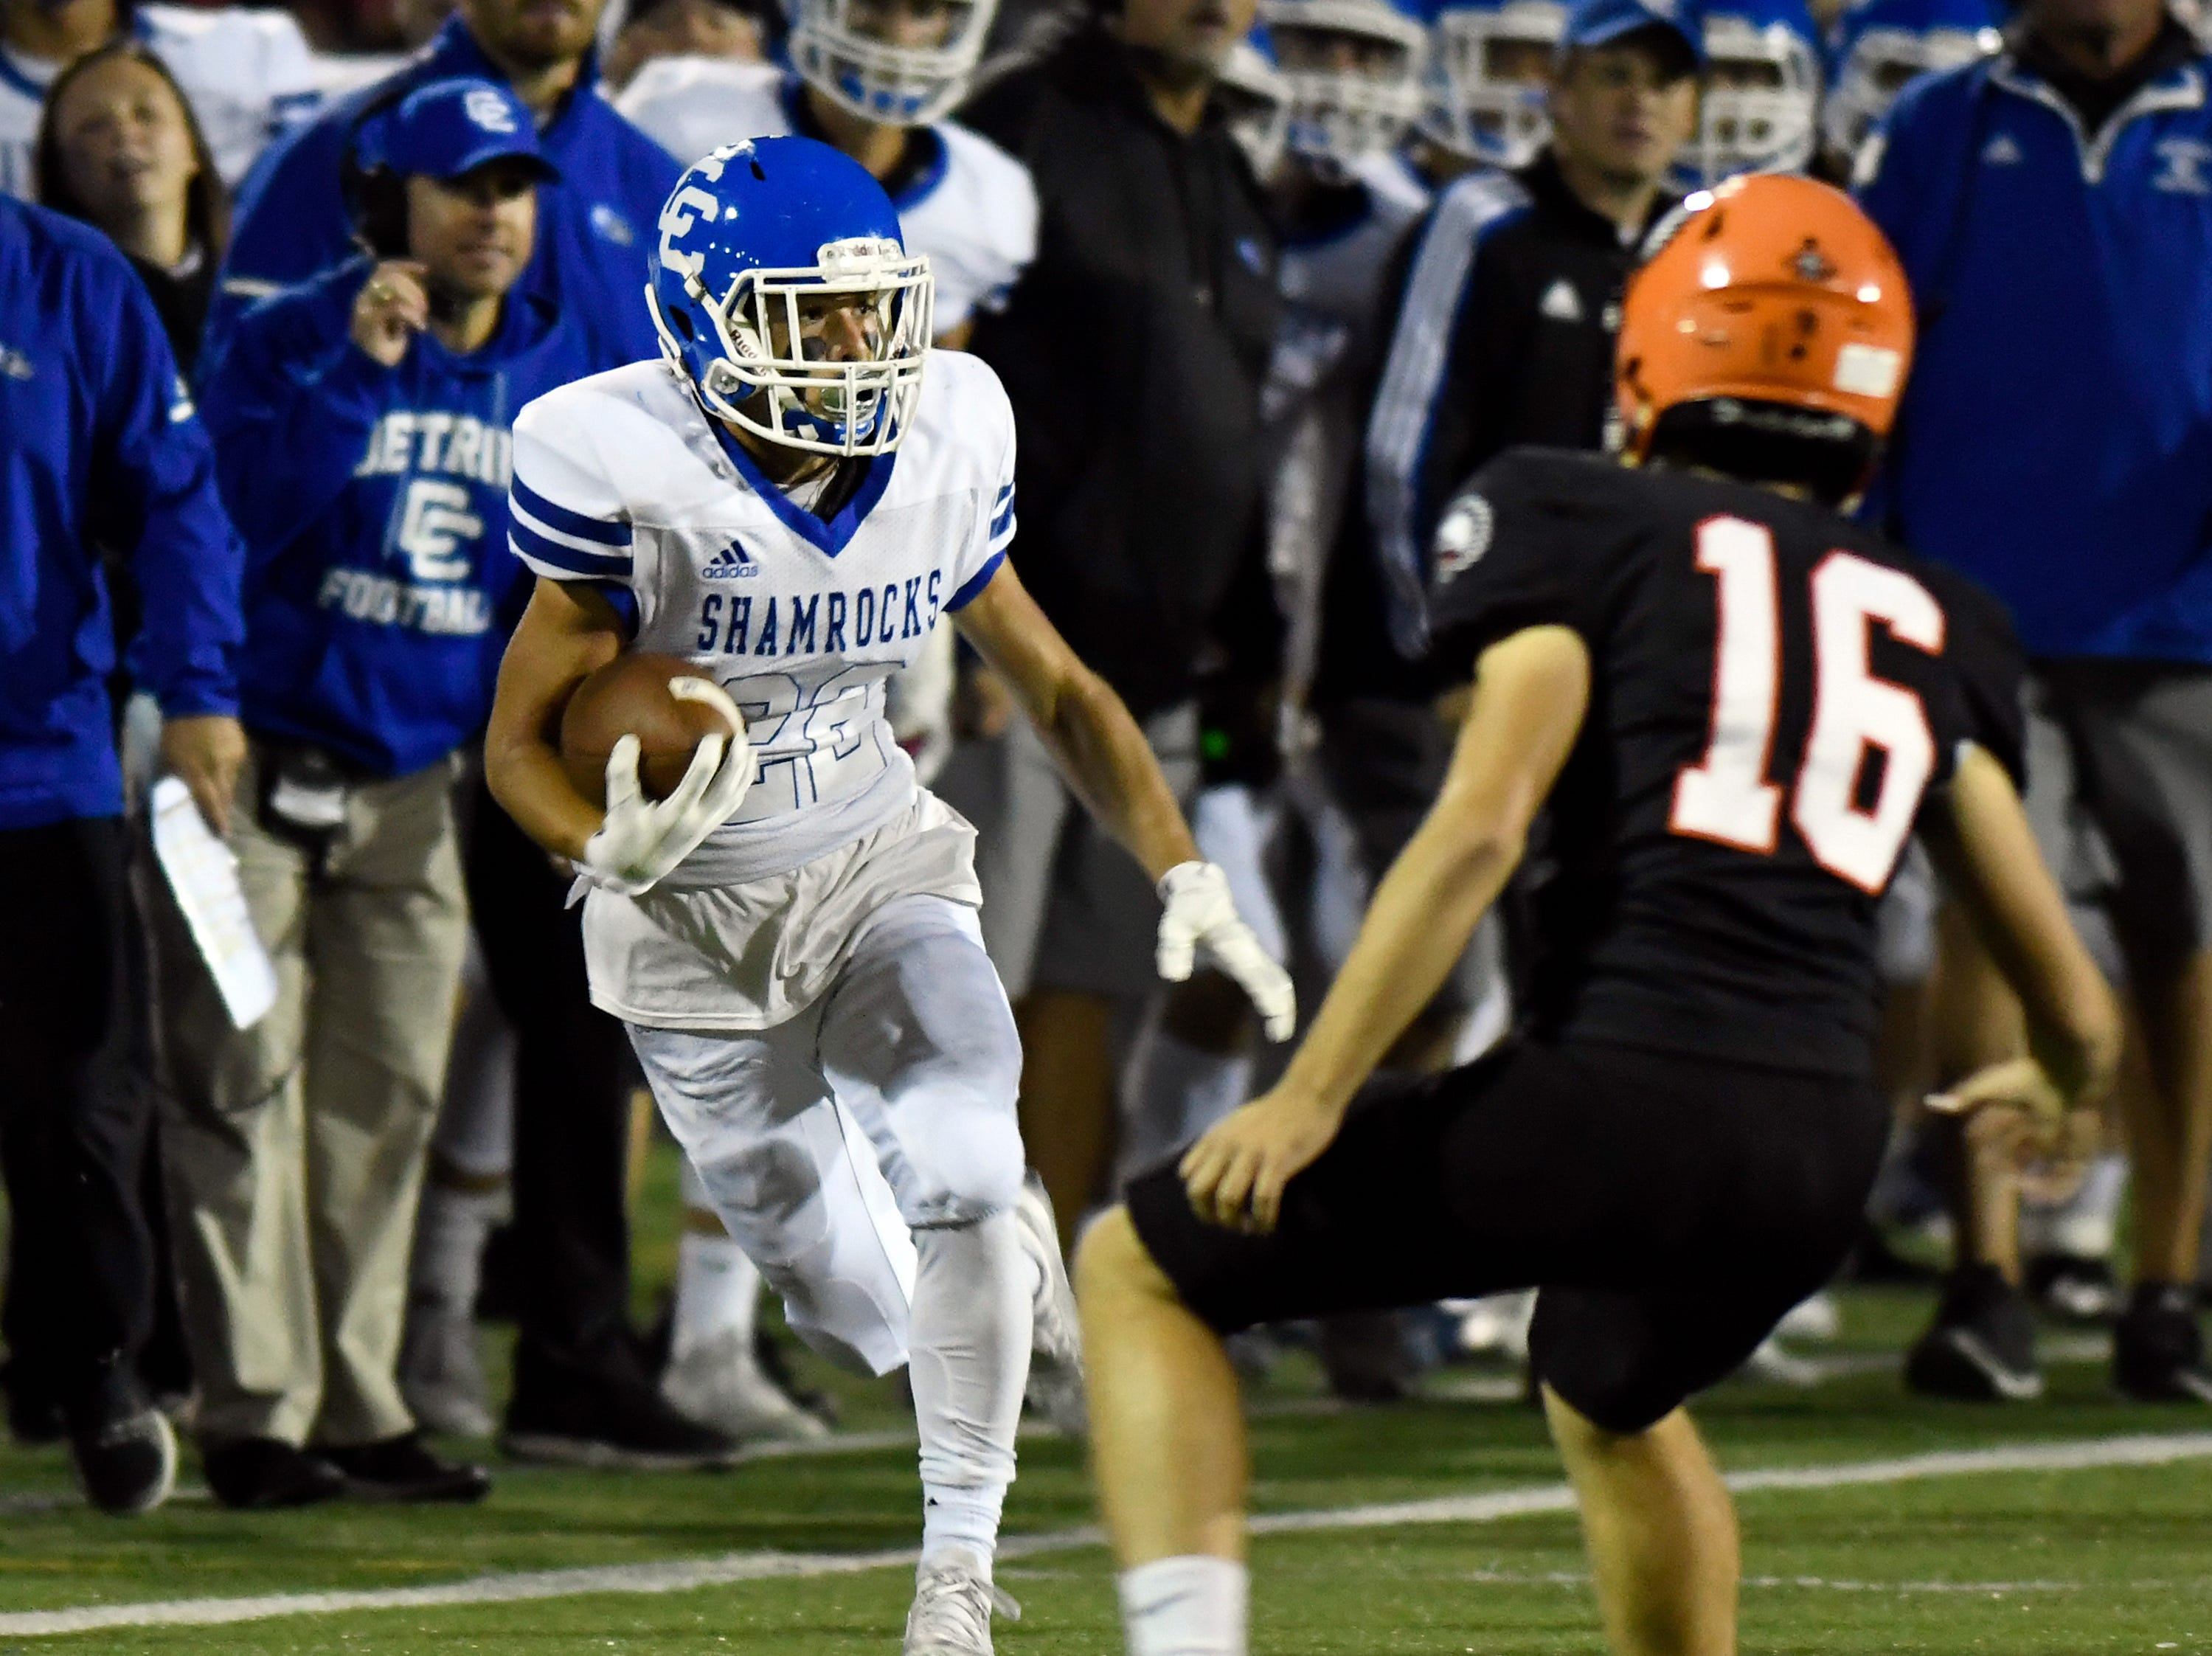 Detroit Catholic Central running back Cody Daraban (22), left, rushes for yardage as he is chased by Birmingham Brother Rice player Ray Margherio (16) in the fourth quarter, Saturday, Sept. 22, 2018 at Hurley Field in Berkley, Mich.  Catholic Central defeated Brother Rice, 21-0.